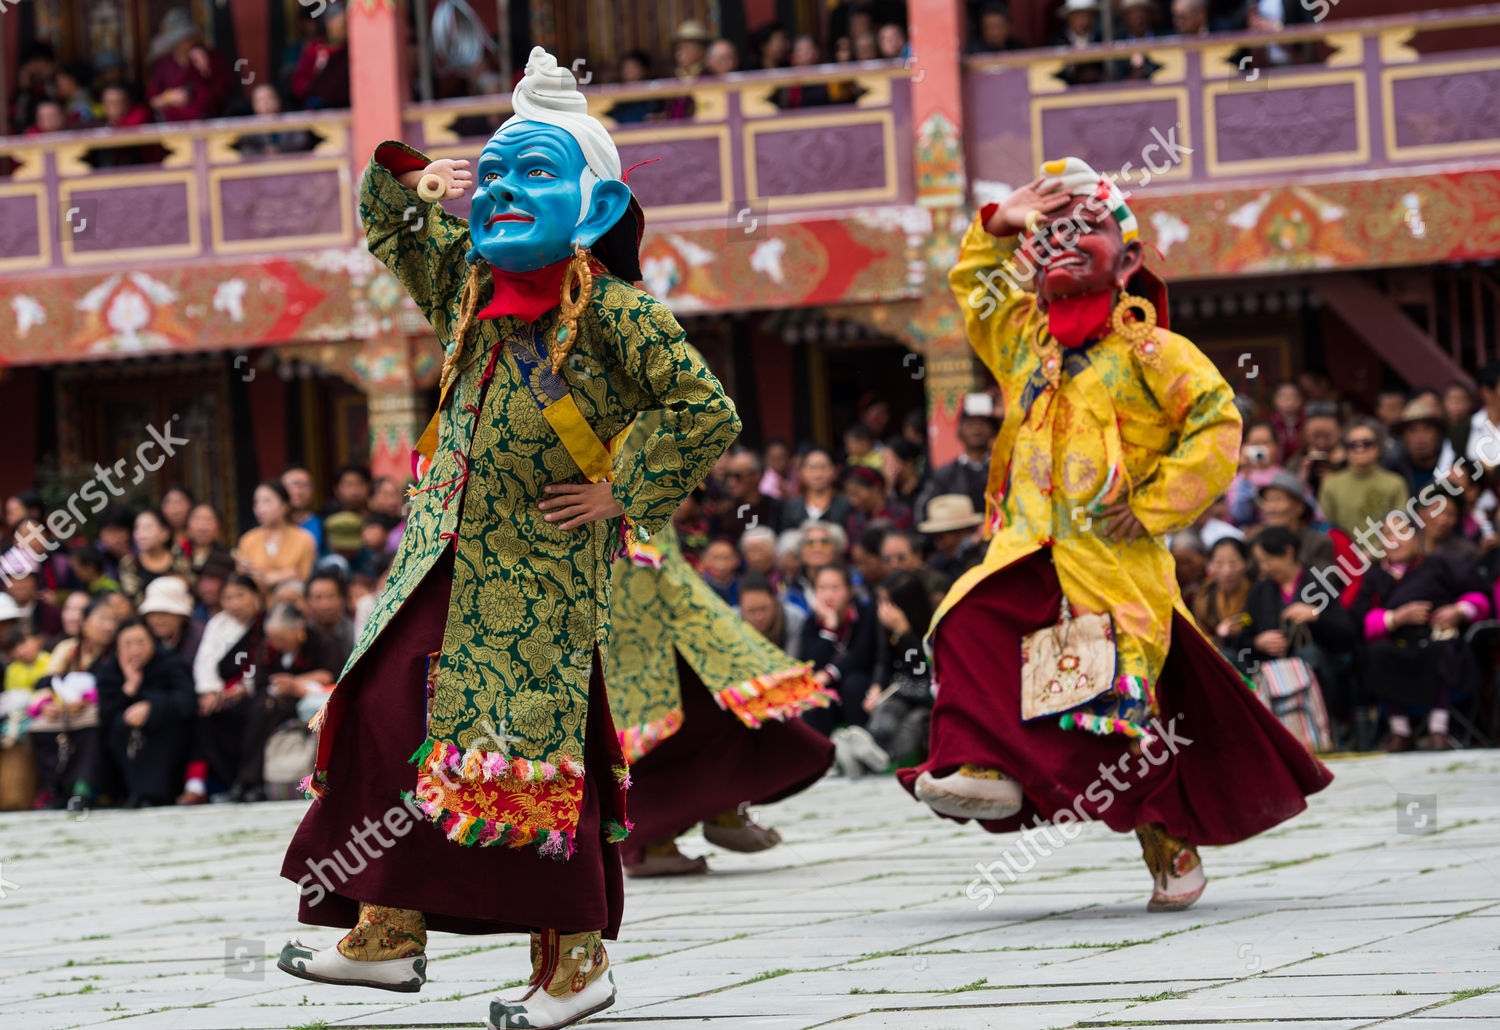 3f1d56029 Birth of Buddha celebration, Kangding of Ganzi Tibetan Autonomous  Prefecture, Sichuan Province, China Stock Image by Stringer for editorial  use, May 25, ...